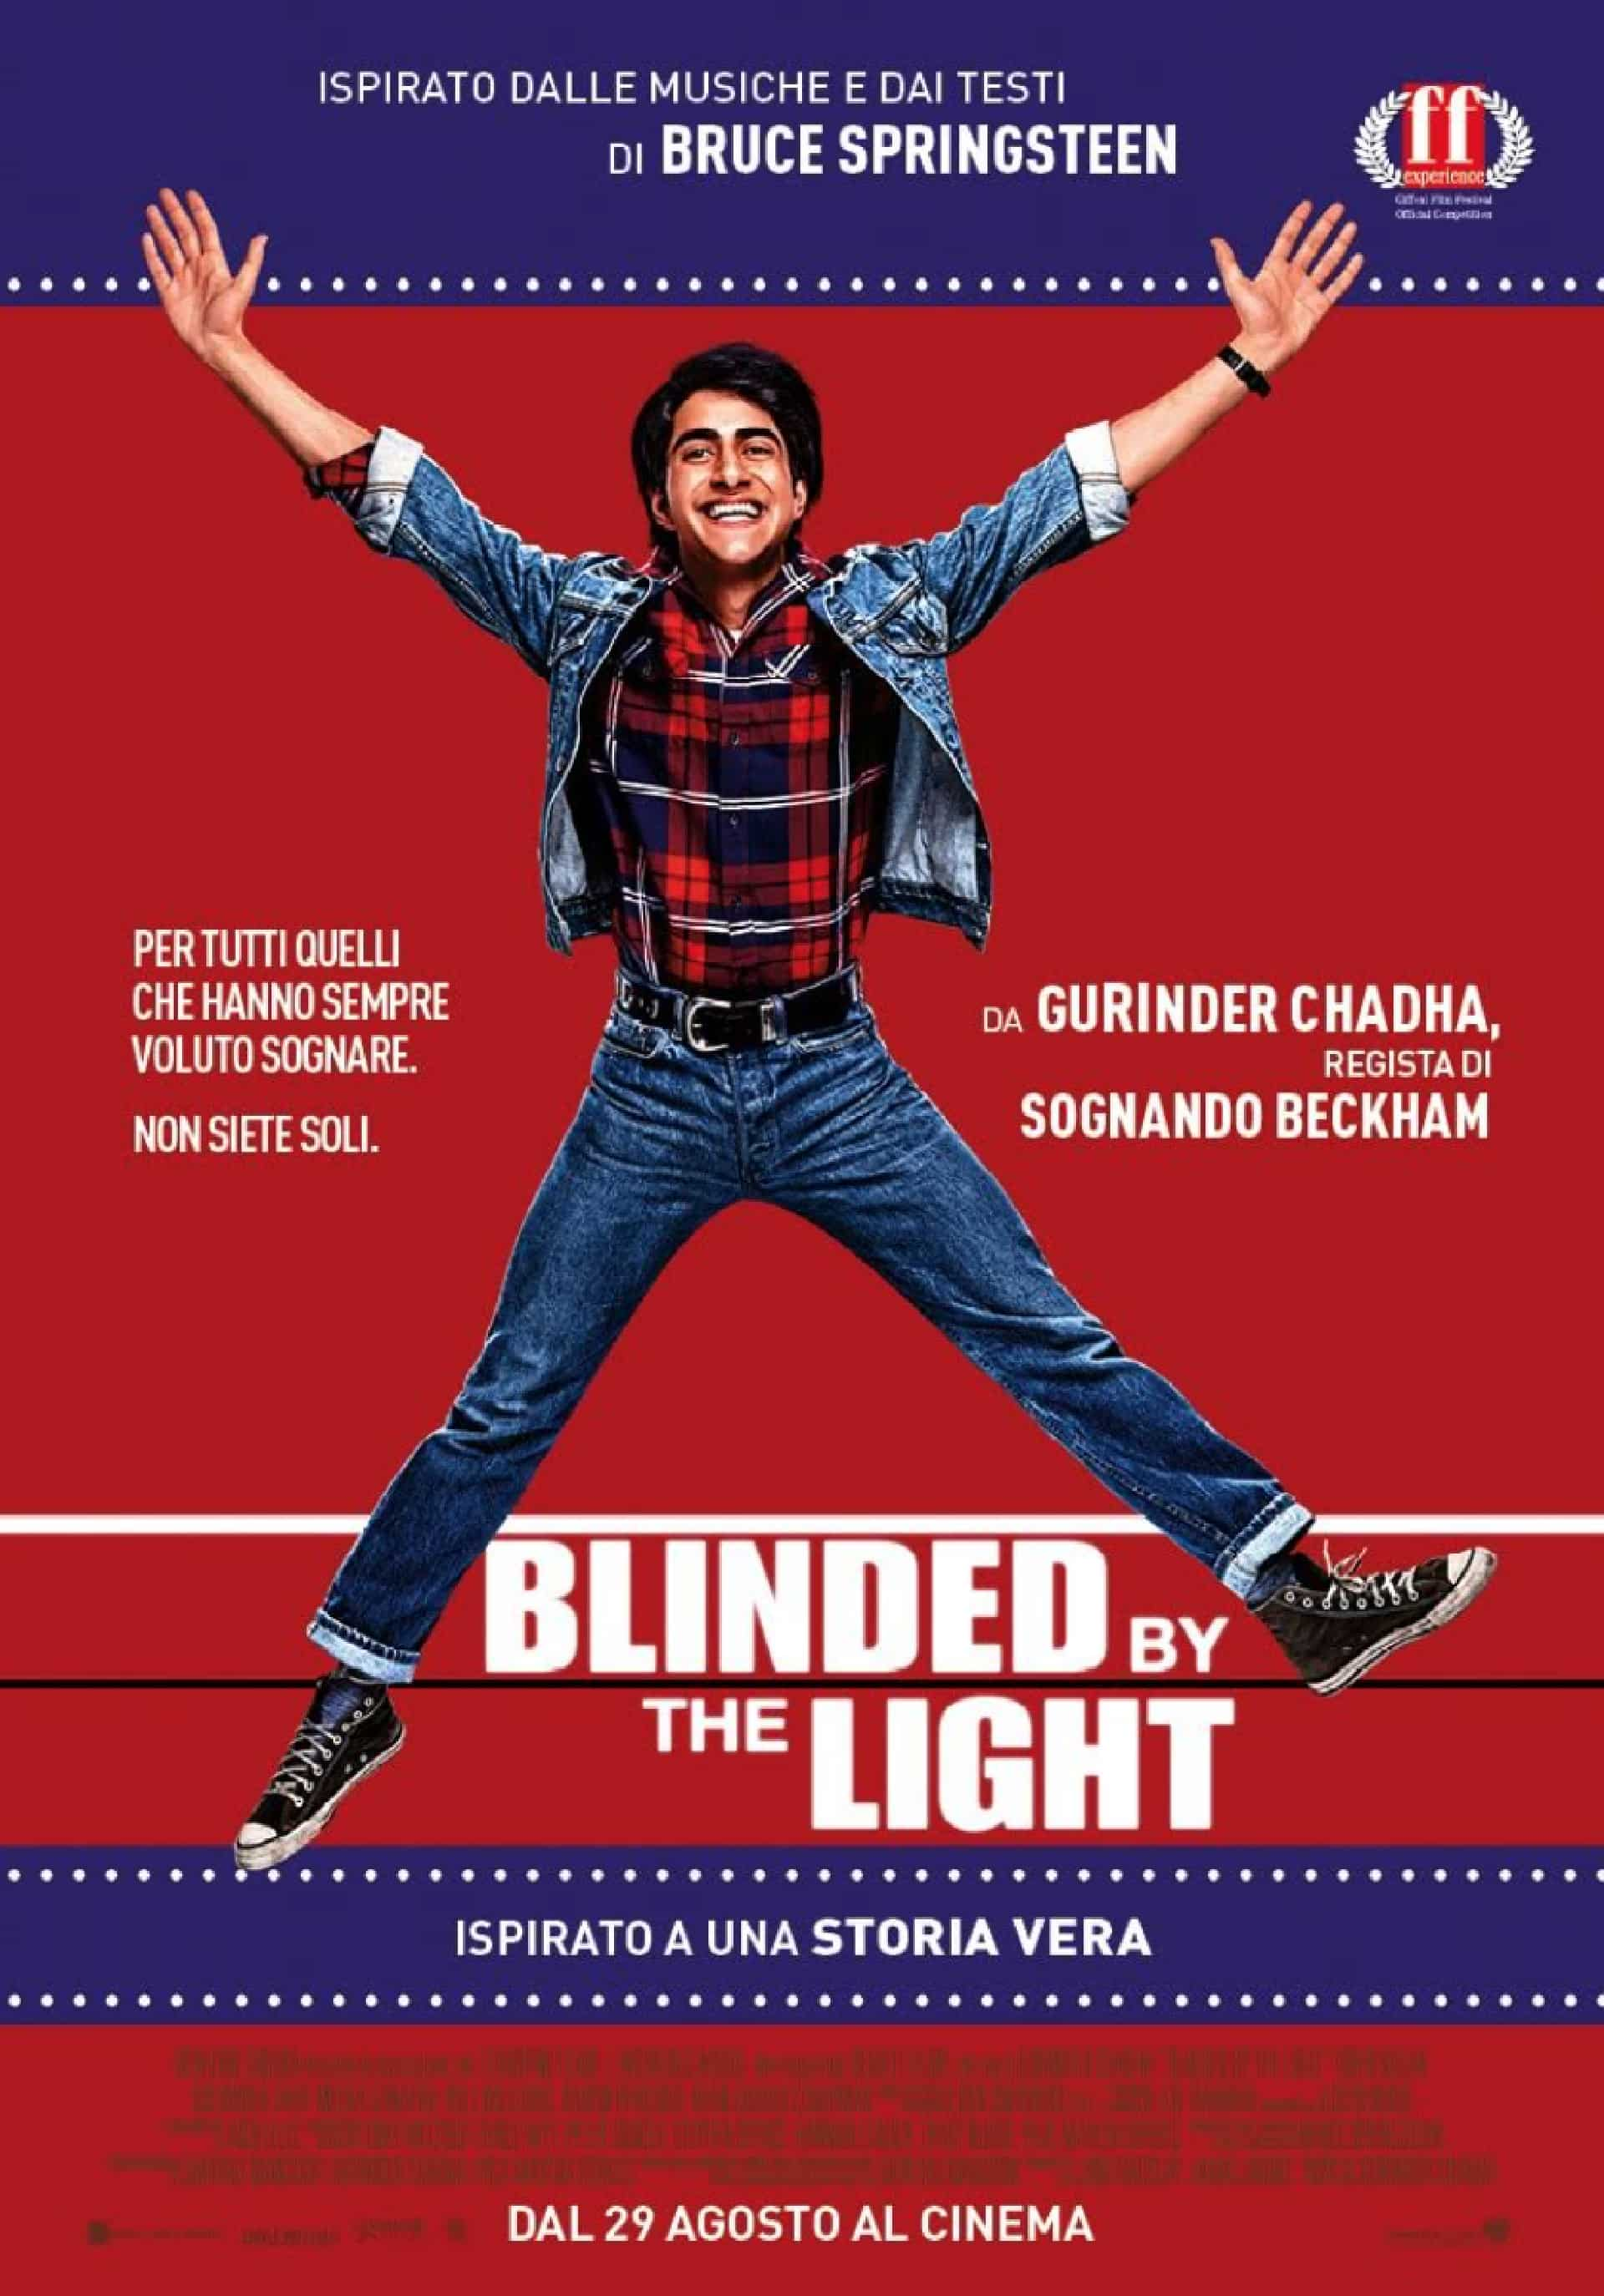 Blinded by the light, cinematographe.it